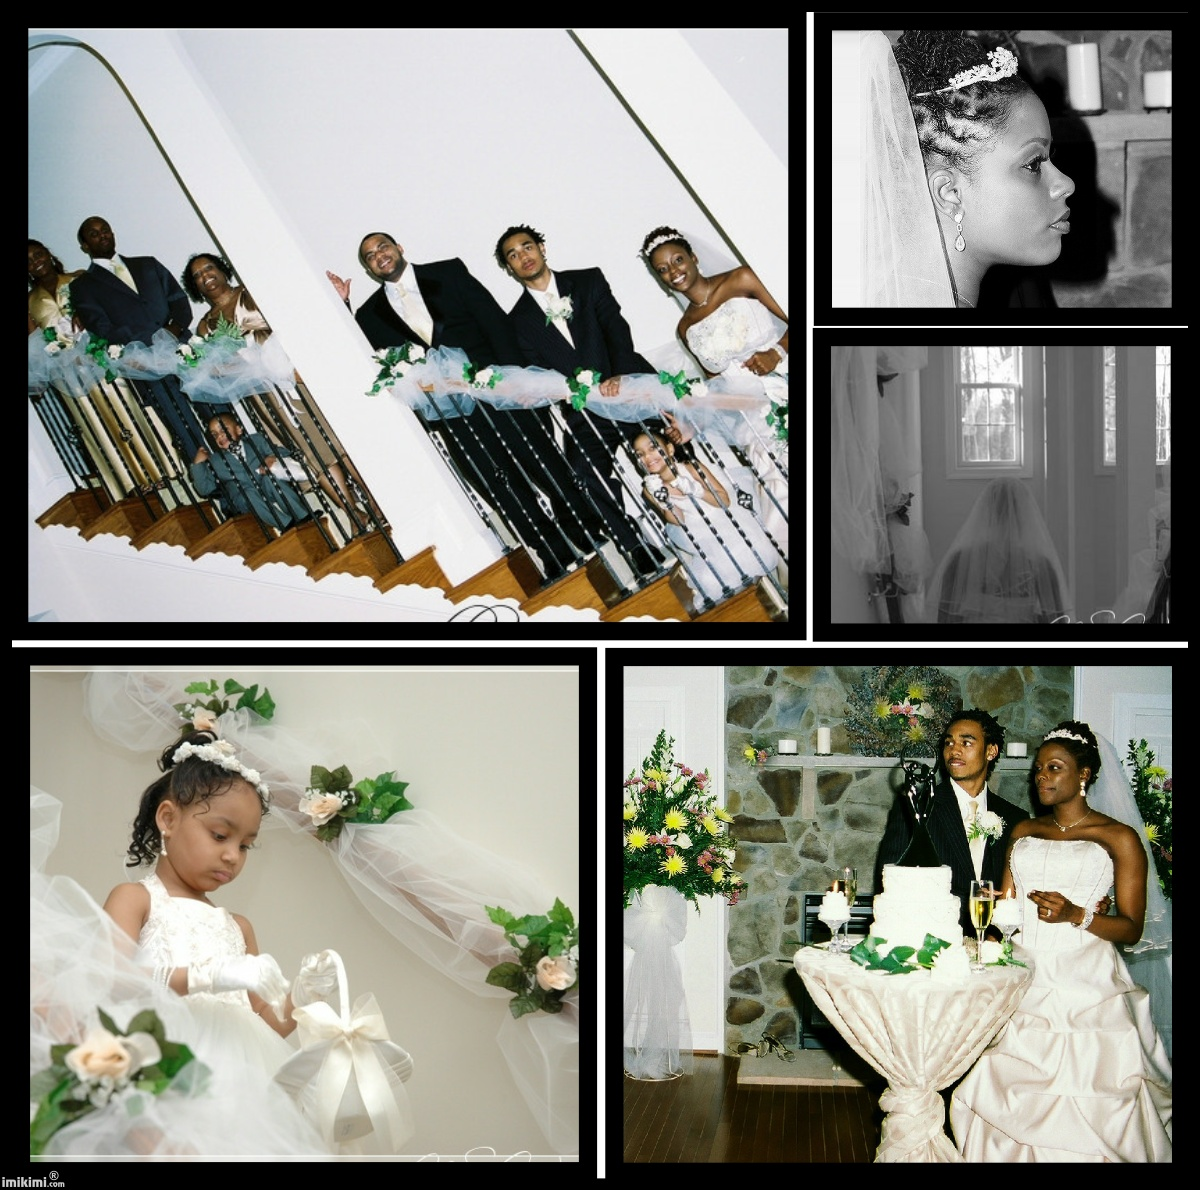 Ns_20weddings_20_20collage_202.original.original